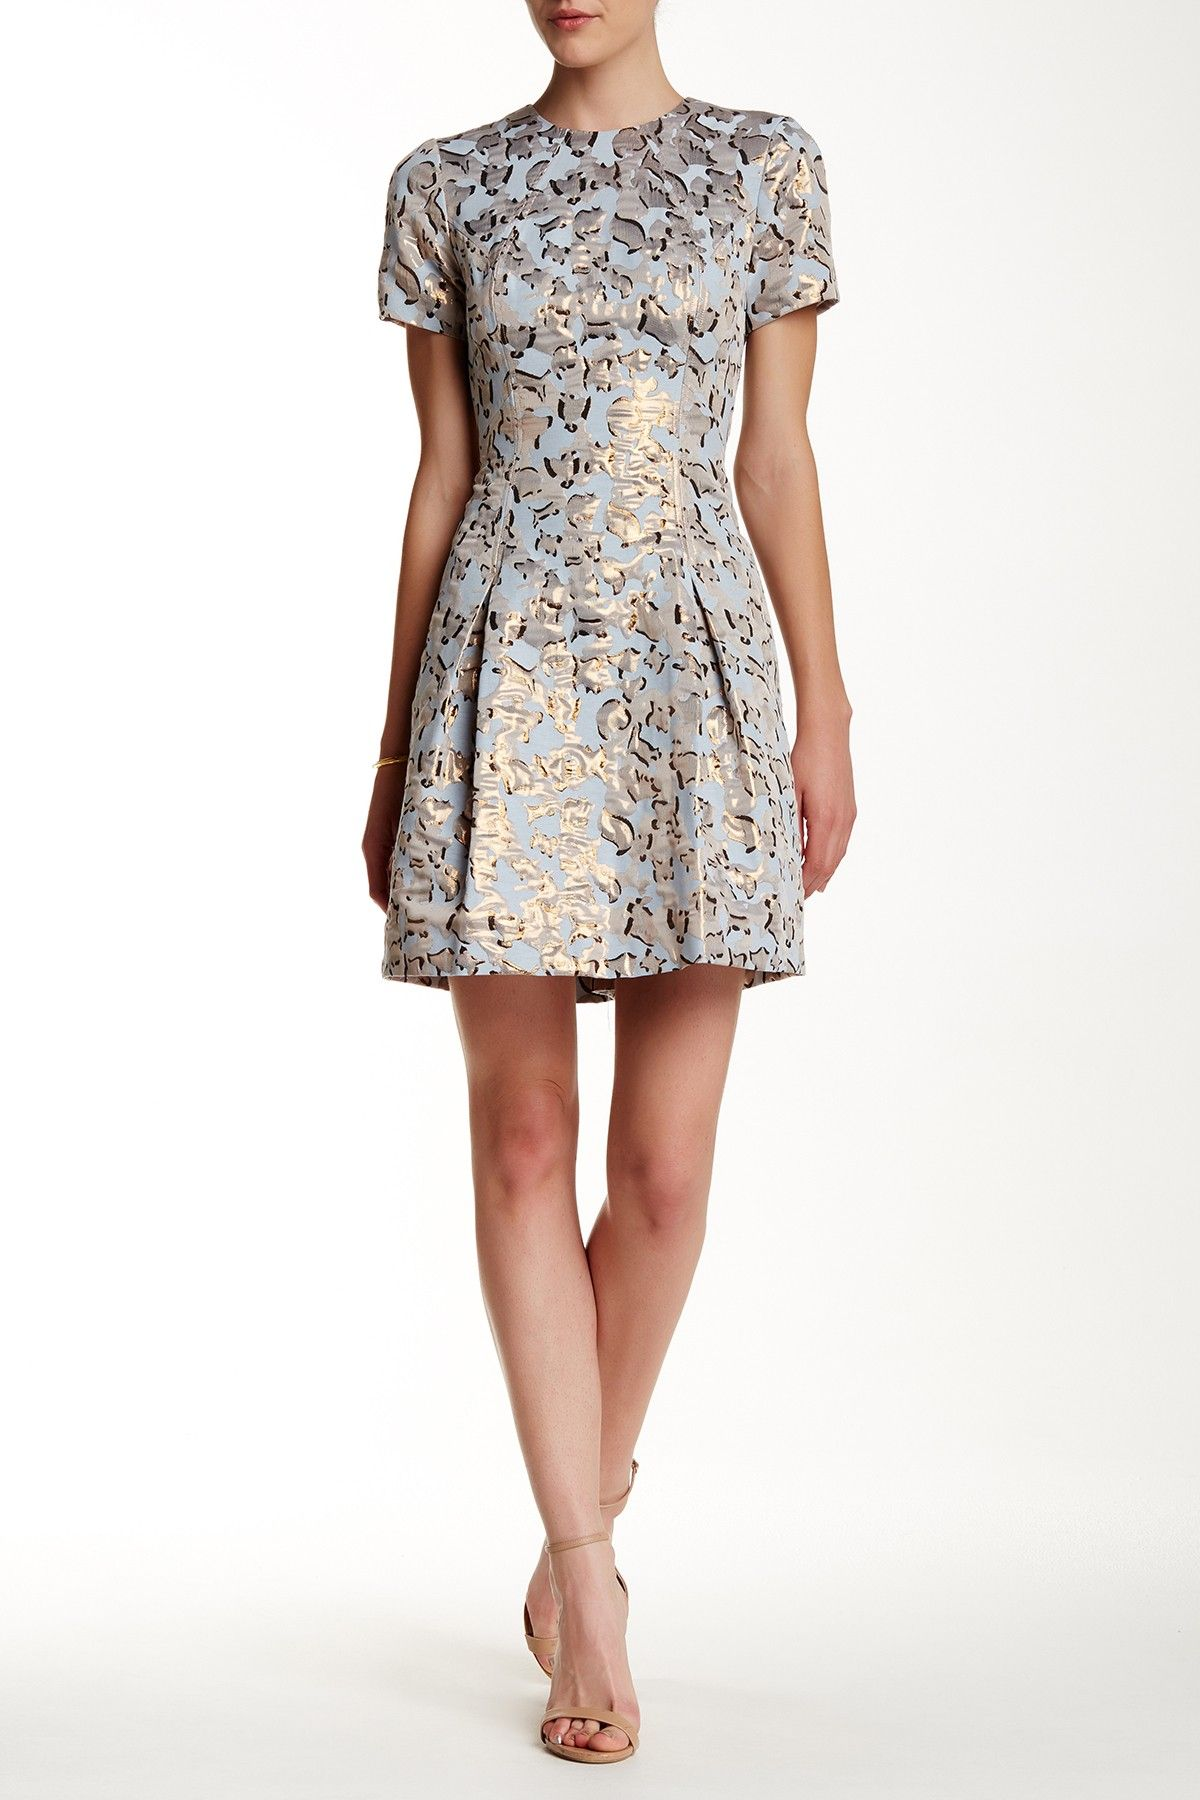 Vince Camuto   Jacquard Fit & Flare Dress   Nordstrom Rack   Playing ...